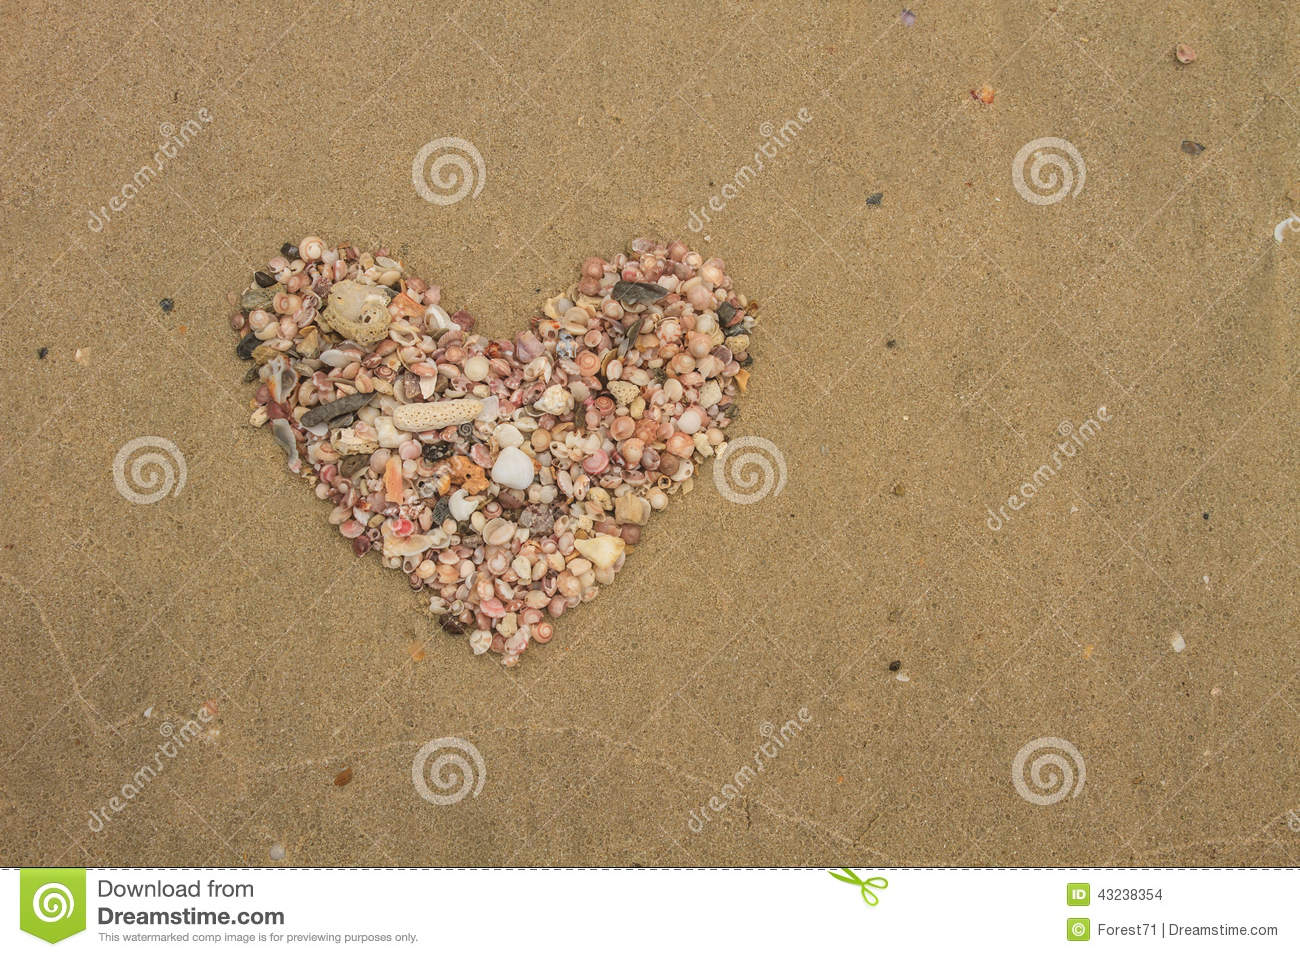 Heart made of sea shells lying on a beach sand stock photo for What are shells made of